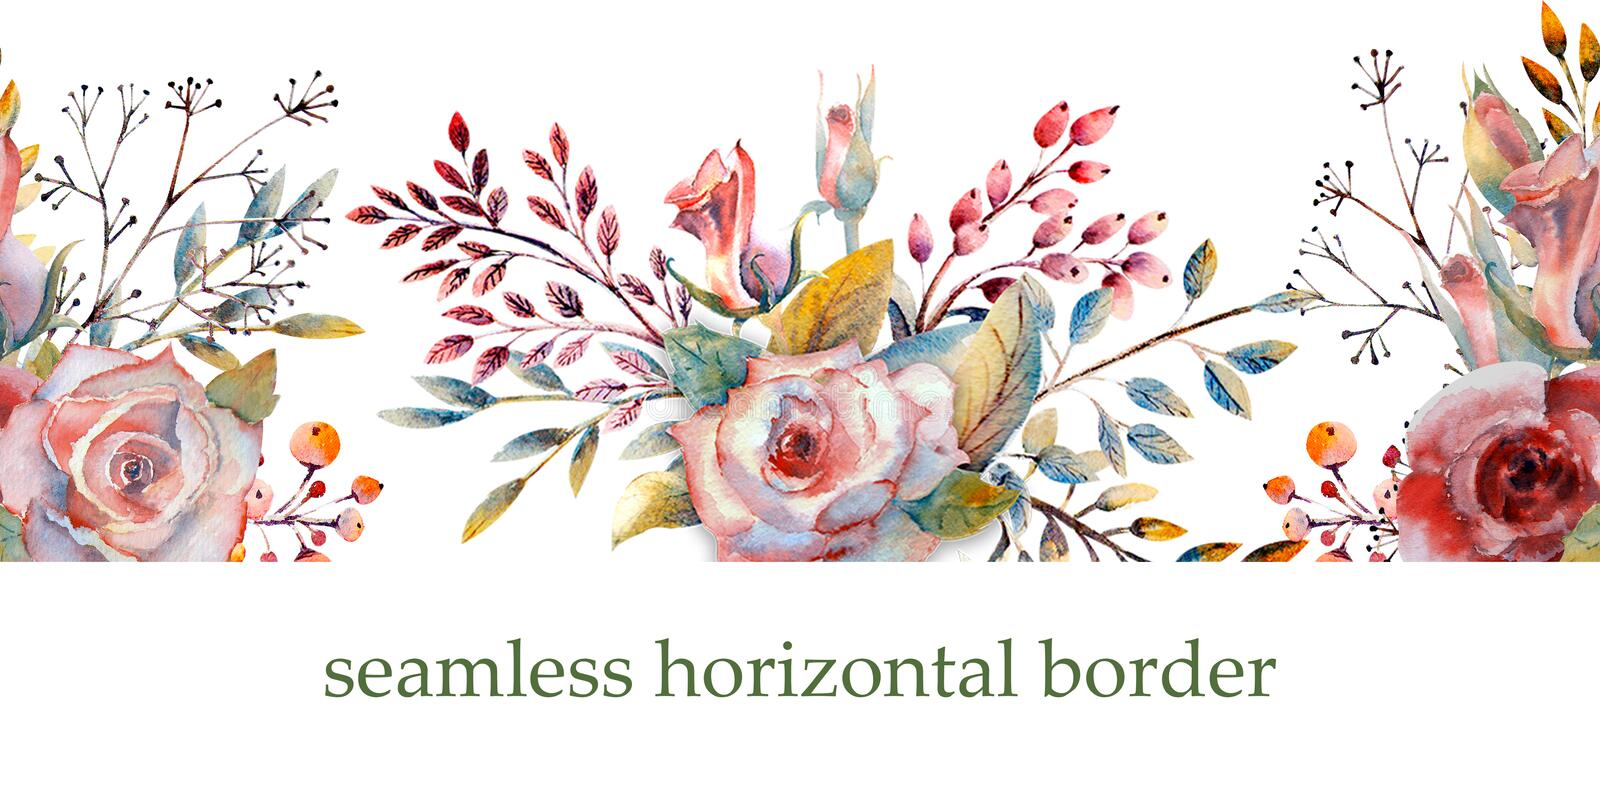 Pink roses, buds, leaves. Repeating summer horizontal border. Floral watercolor. Watercolor compositions for the design of. Greeting cards or invitations vector illustration